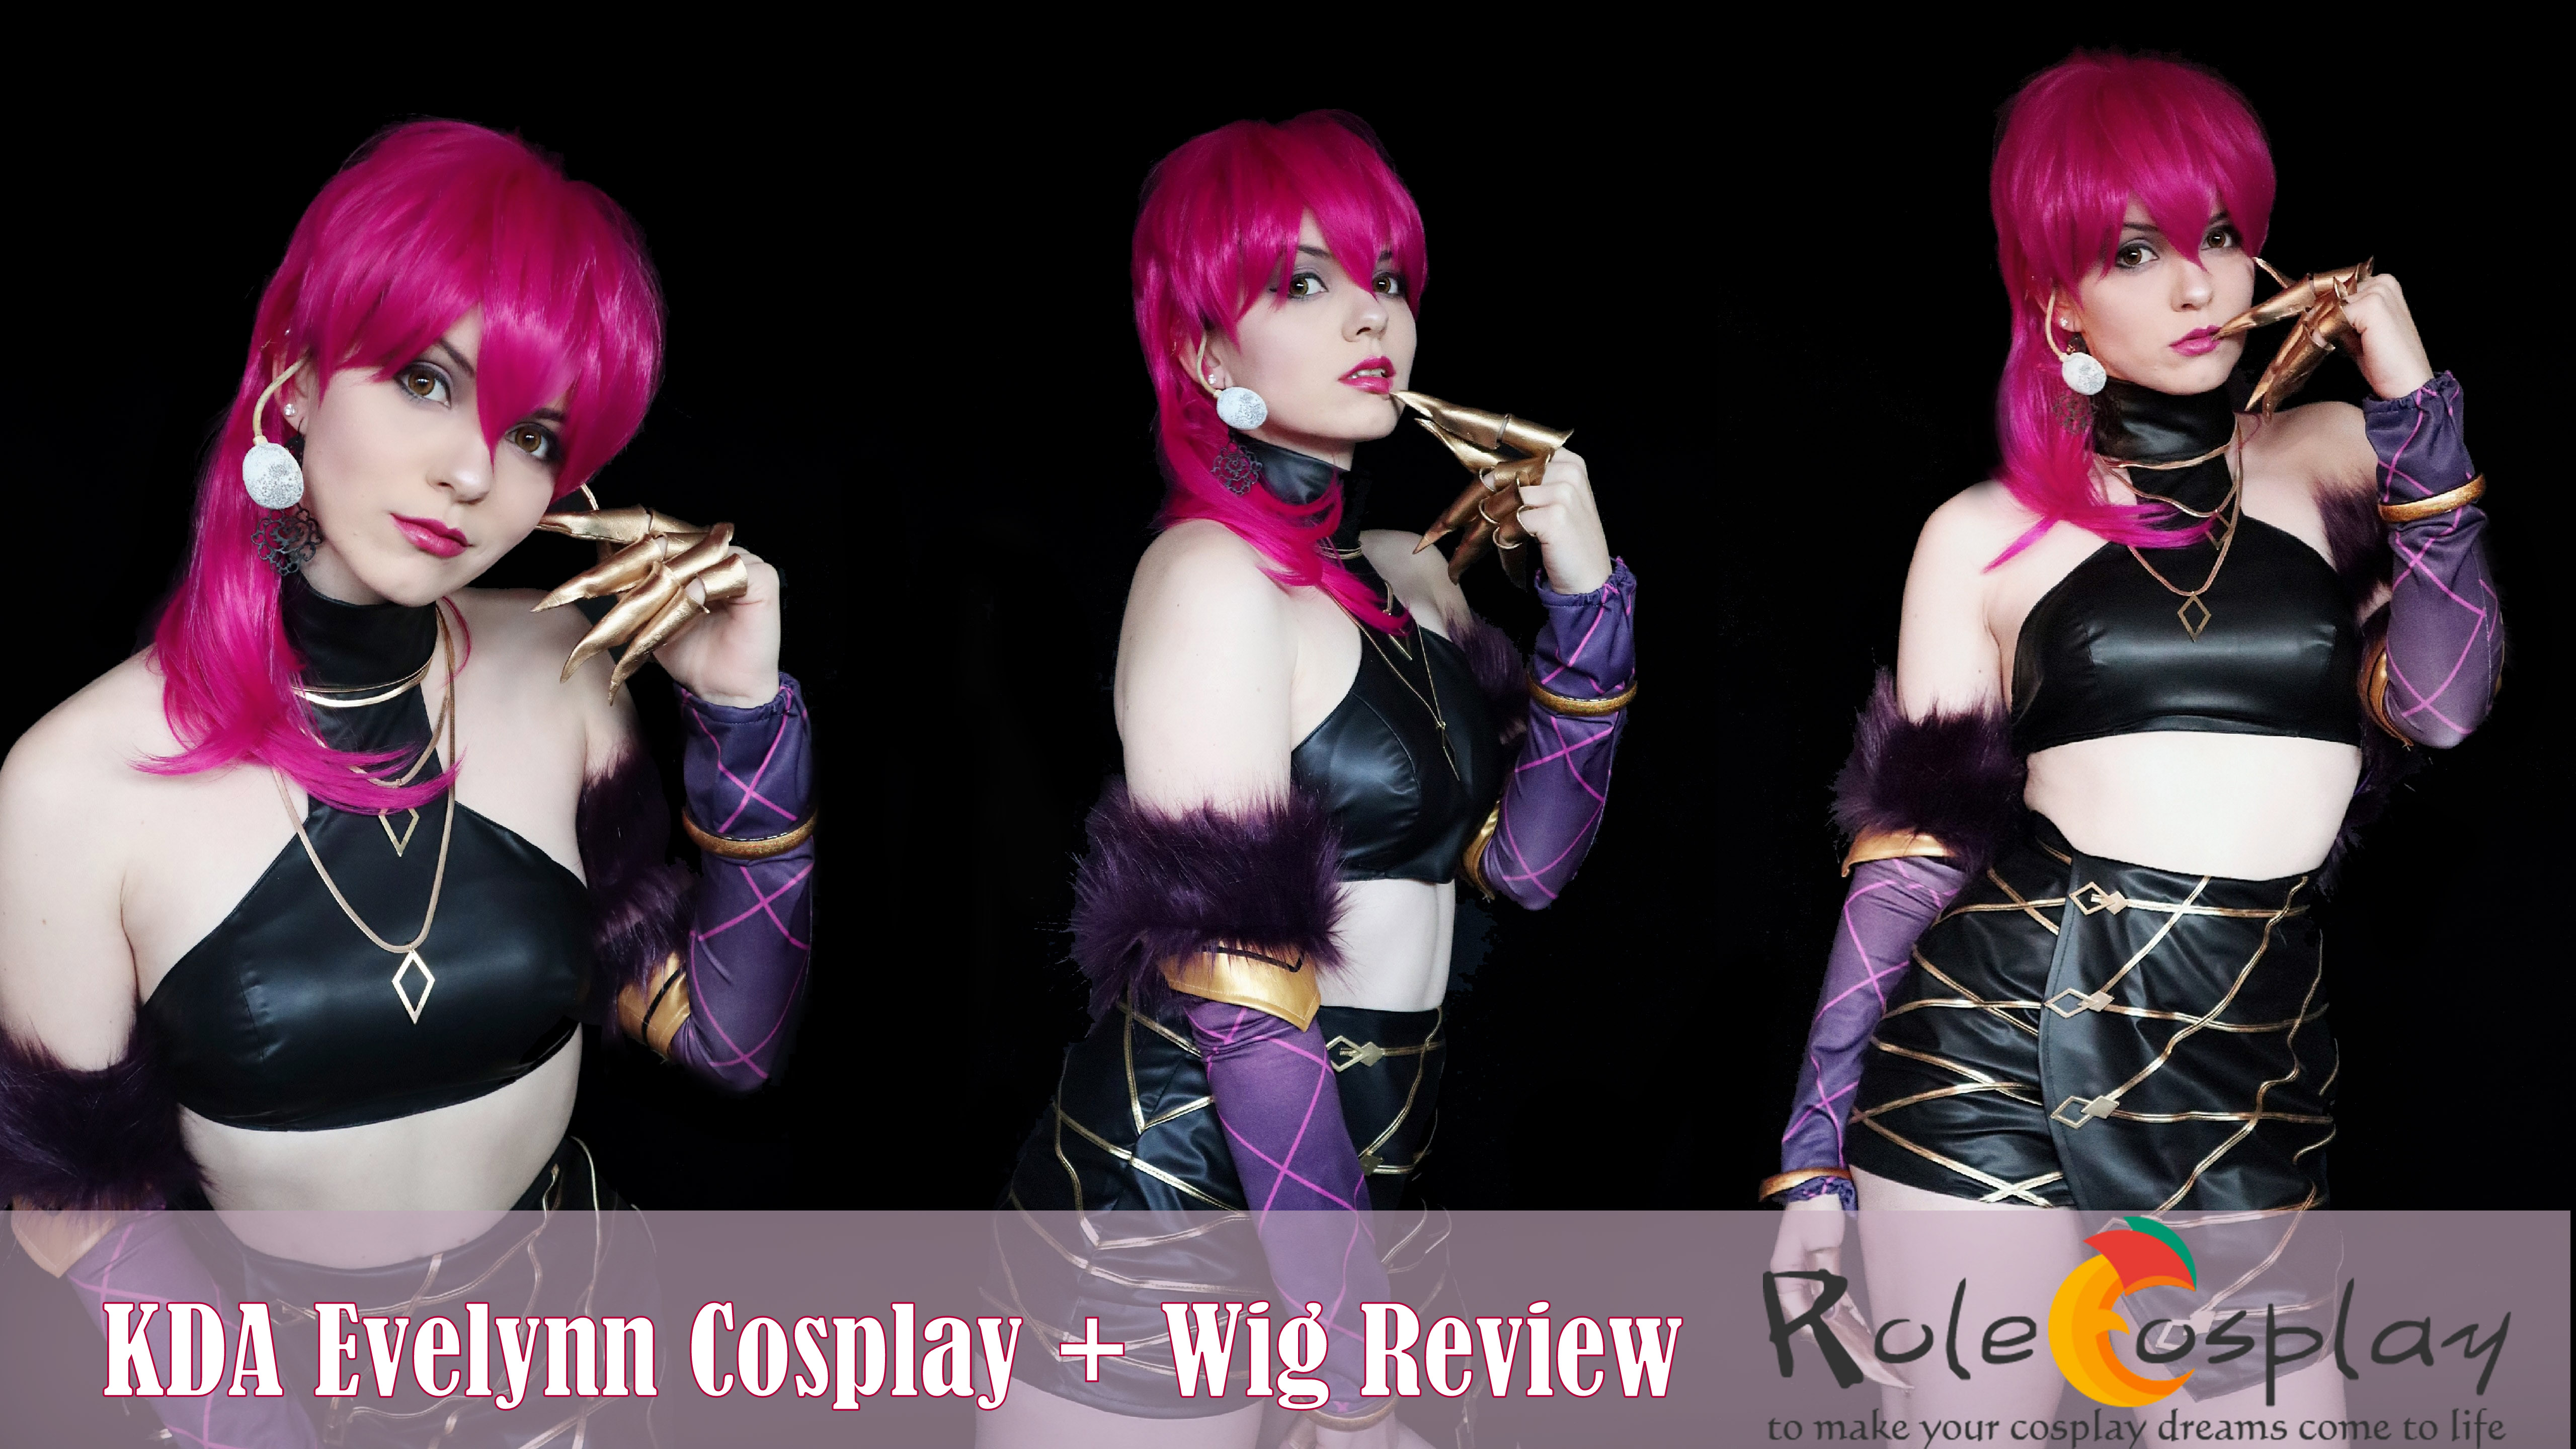 KDA Evelynn Cosplay + Wig Review from Rolecosplay